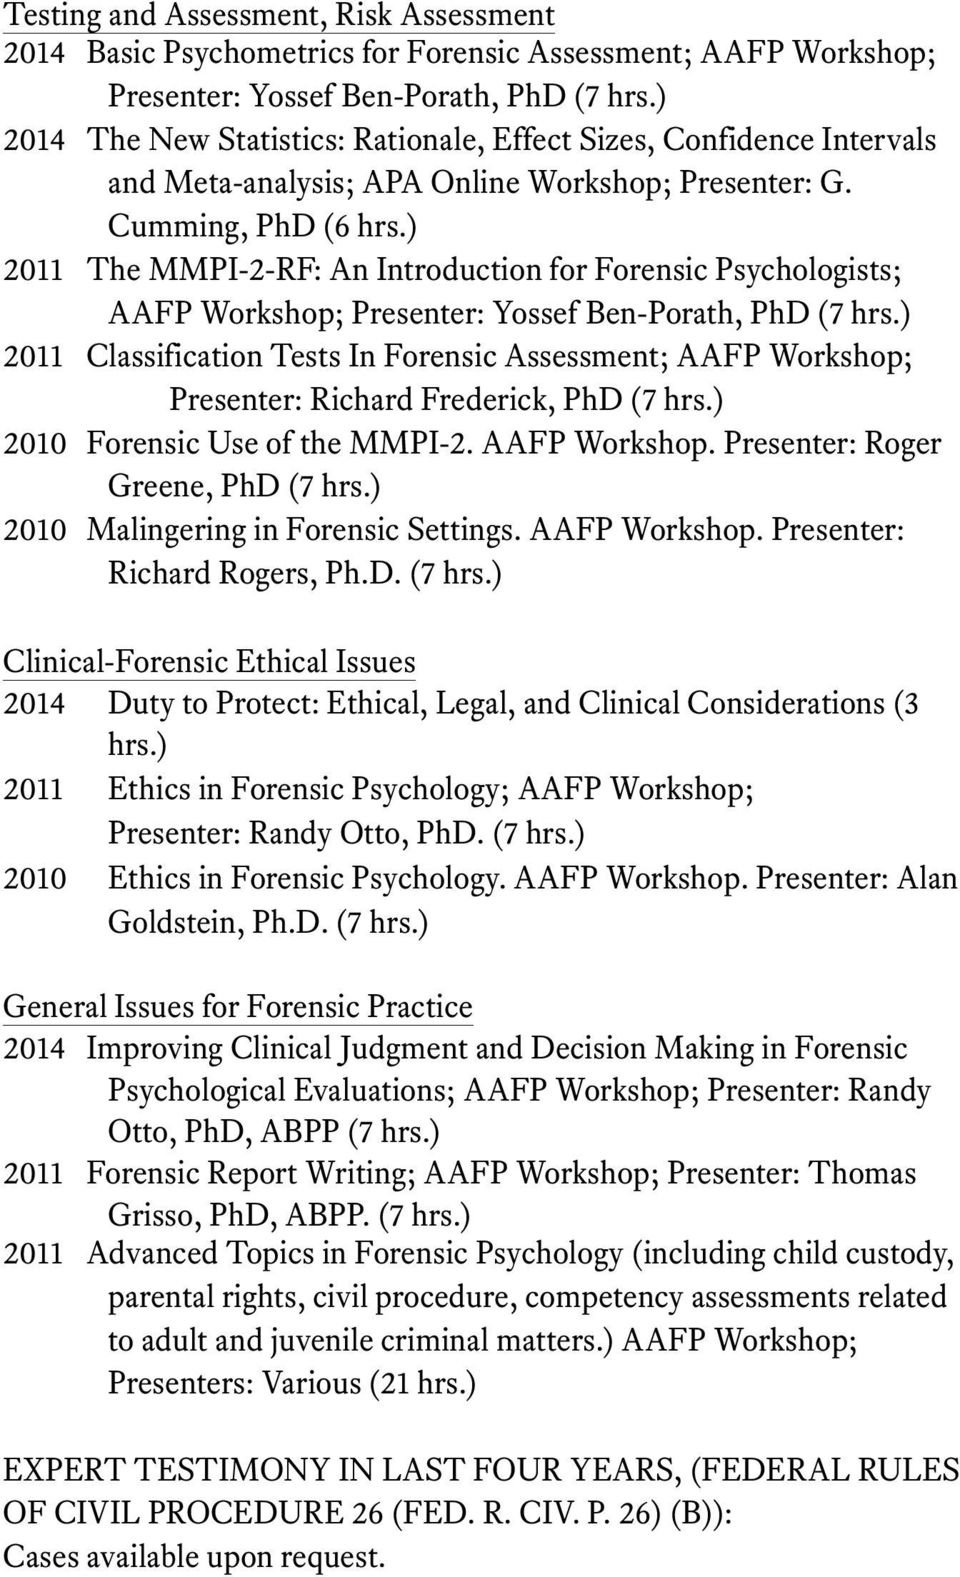 ) 2011 The MMPI-2-RF: An Introduction for Forensic Psychologists; AAFP Workshop; Presenter: Yossef Ben-Porath, PhD (7 hrs.